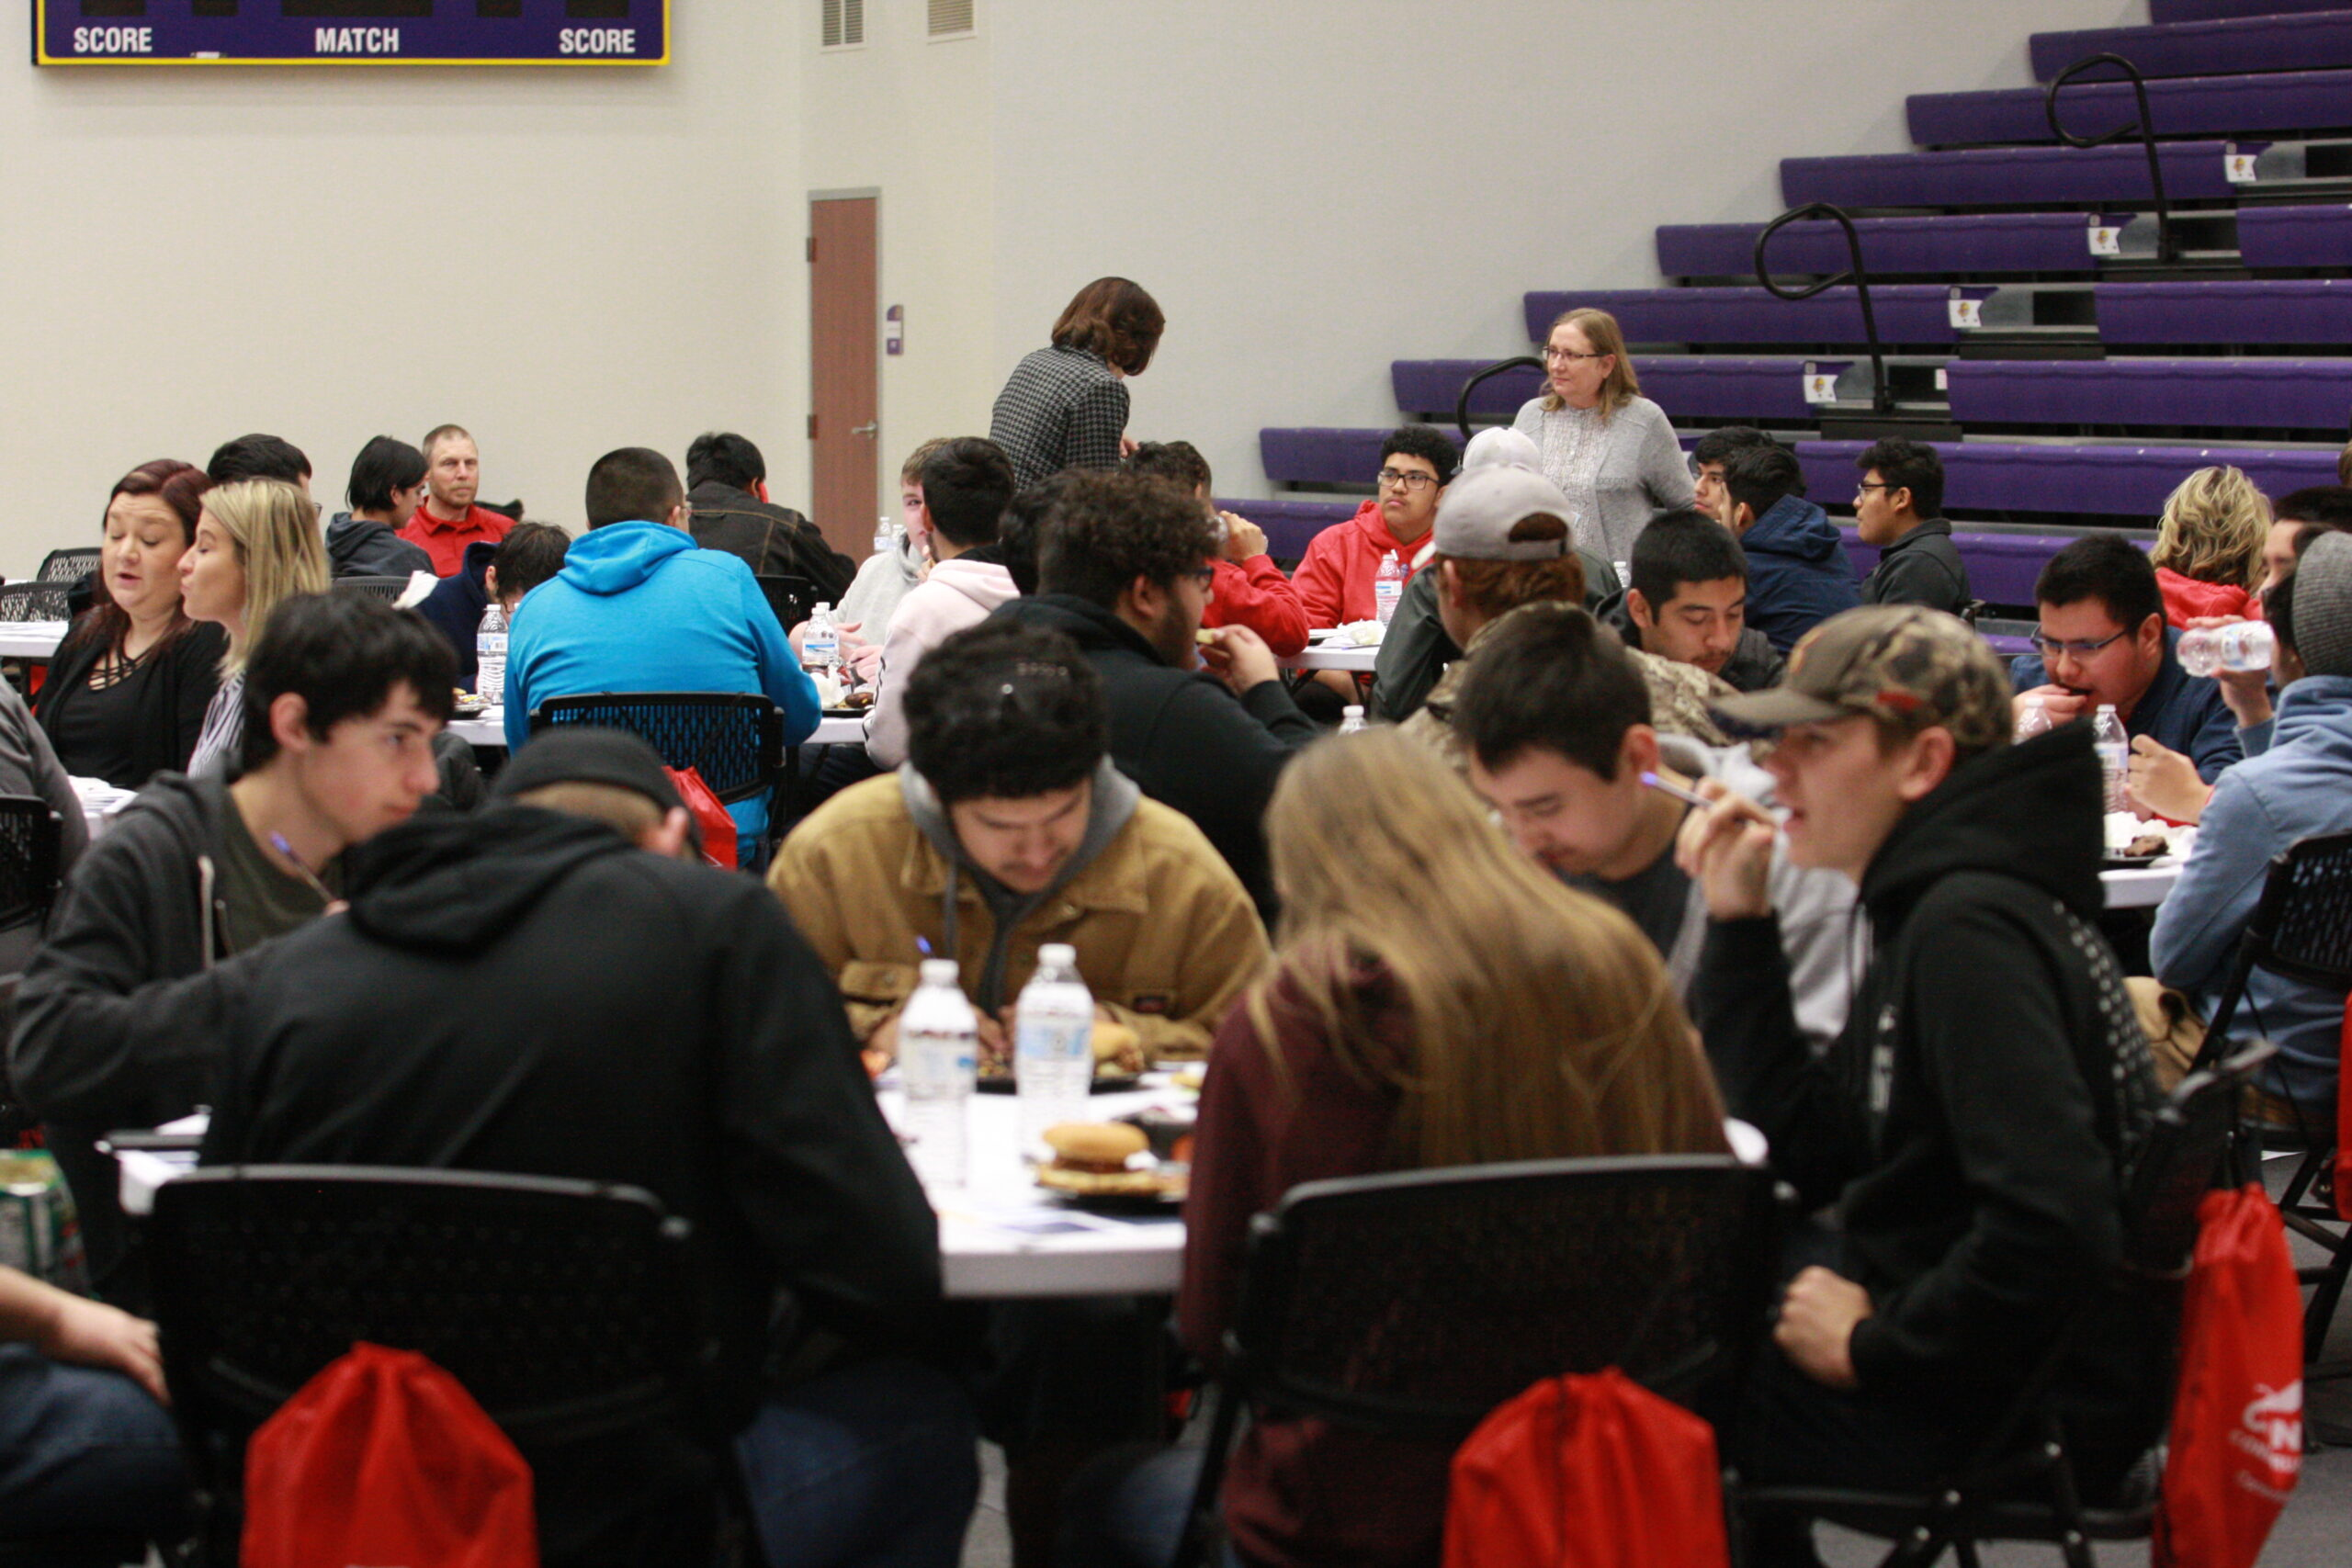 High school students completing comment cards and eating lunch at the DC3 student activity center during construction day